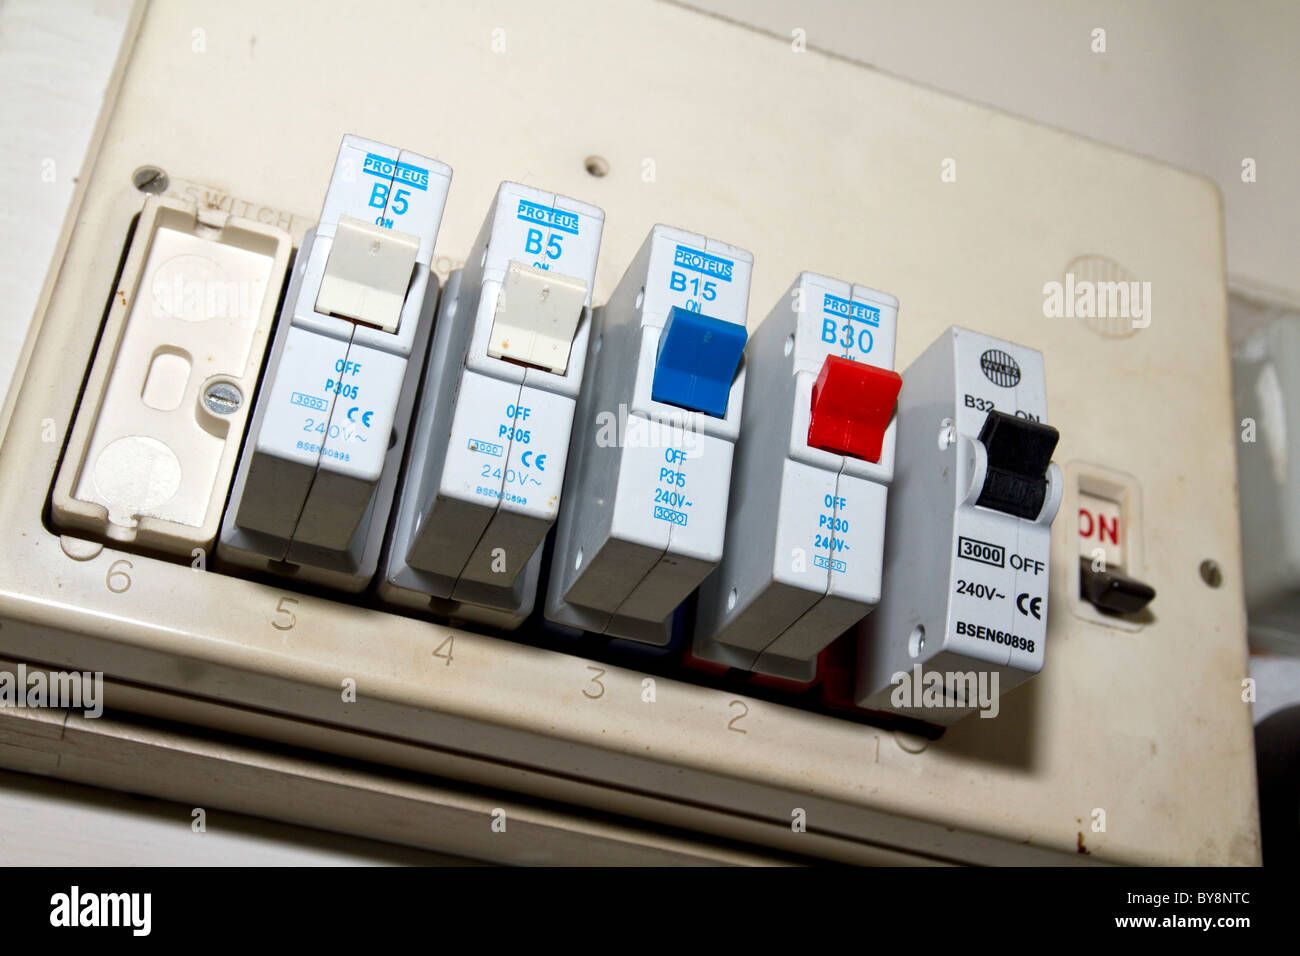 uk old electric fuse box in a london house BY8NTC uk old electric fuse box in a london house stock photo, royalty house fuse box at virtualis.co